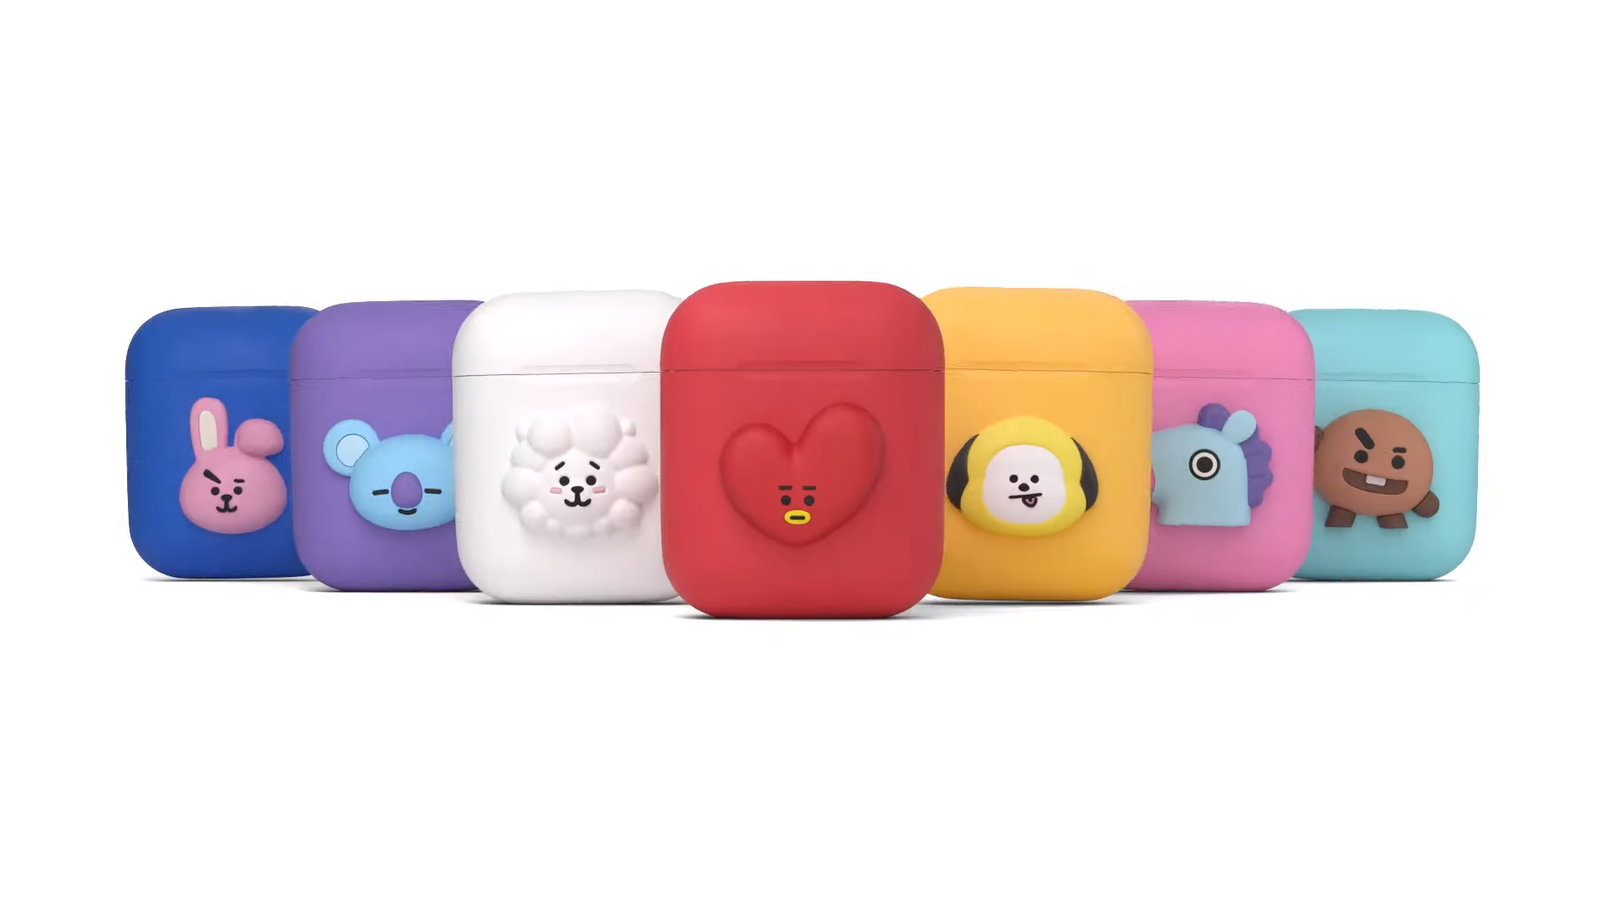 This Korean Apple Ad Is Literally the Only Reason I Want AirPods